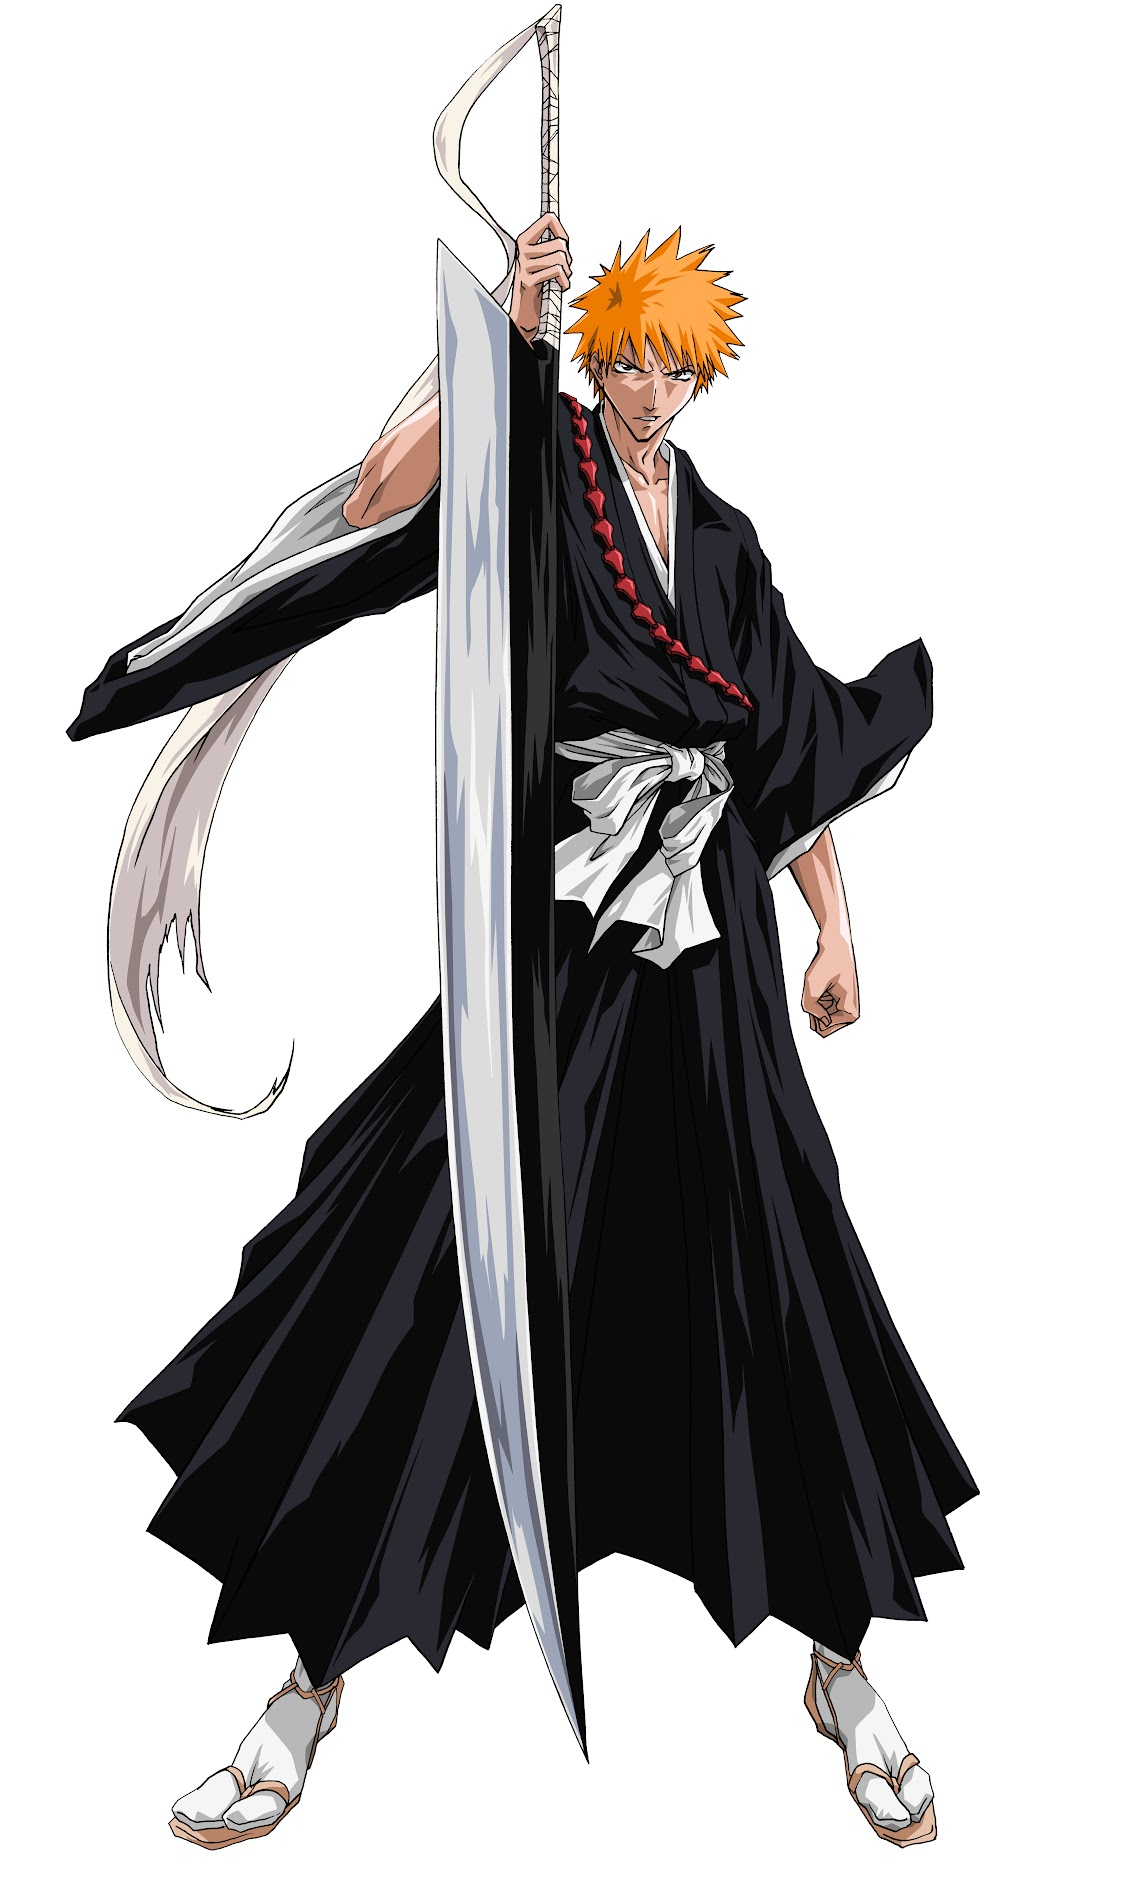 Bleach: The Blade of Fate